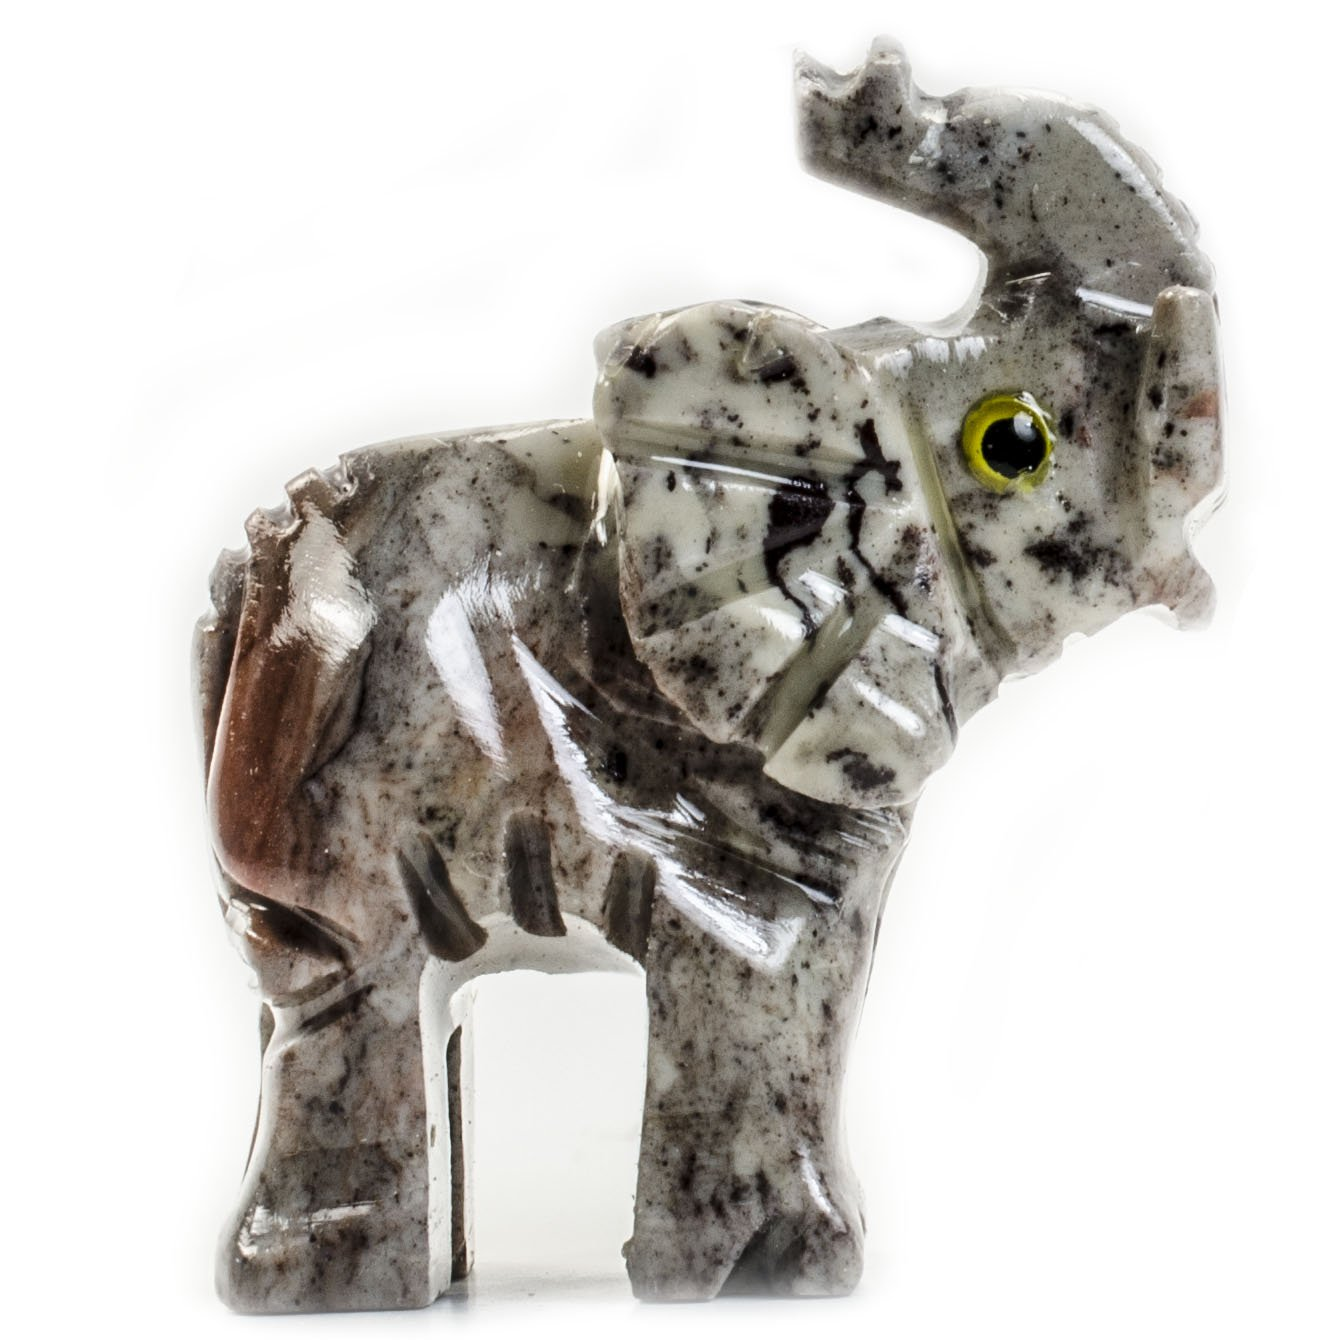 Digging Dolls : 10 pcs Artisan Elephant Collectable Animal Figurine - Party Favors, Stocking Stuffers, Gifts, Collecting and More! by Digging Dolls (Image #2)